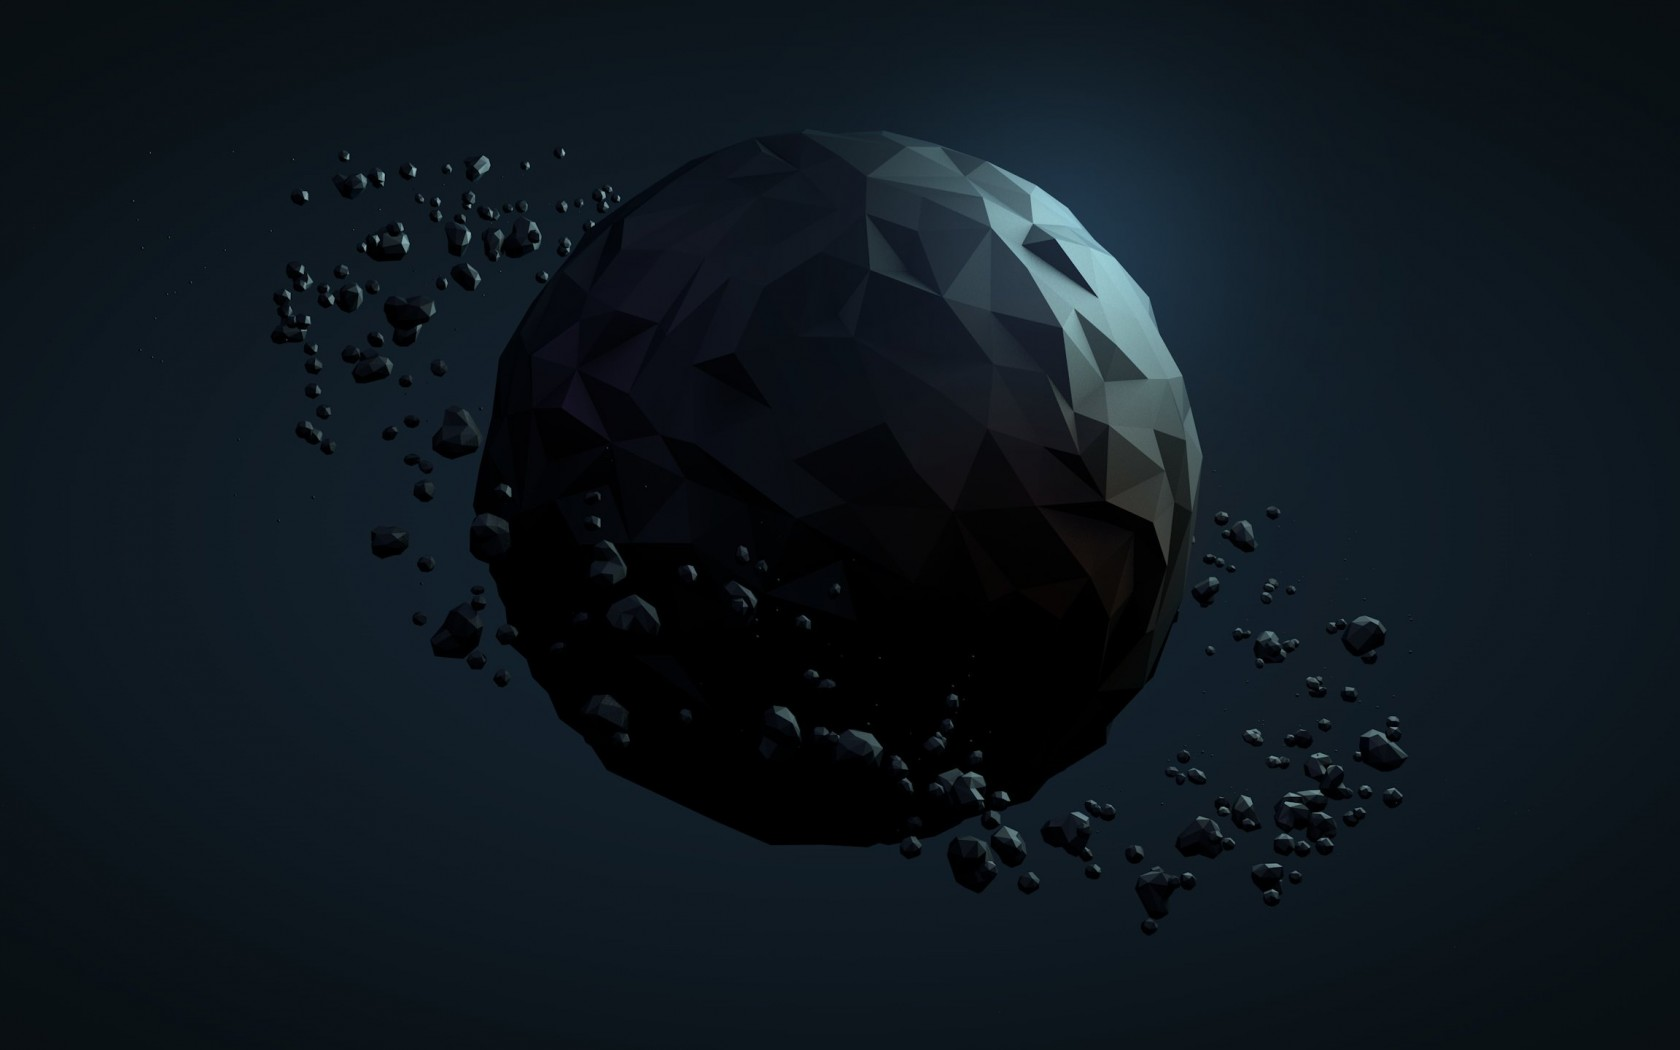 Low Poly Planet Wallpaper for Desktop 1680x1050